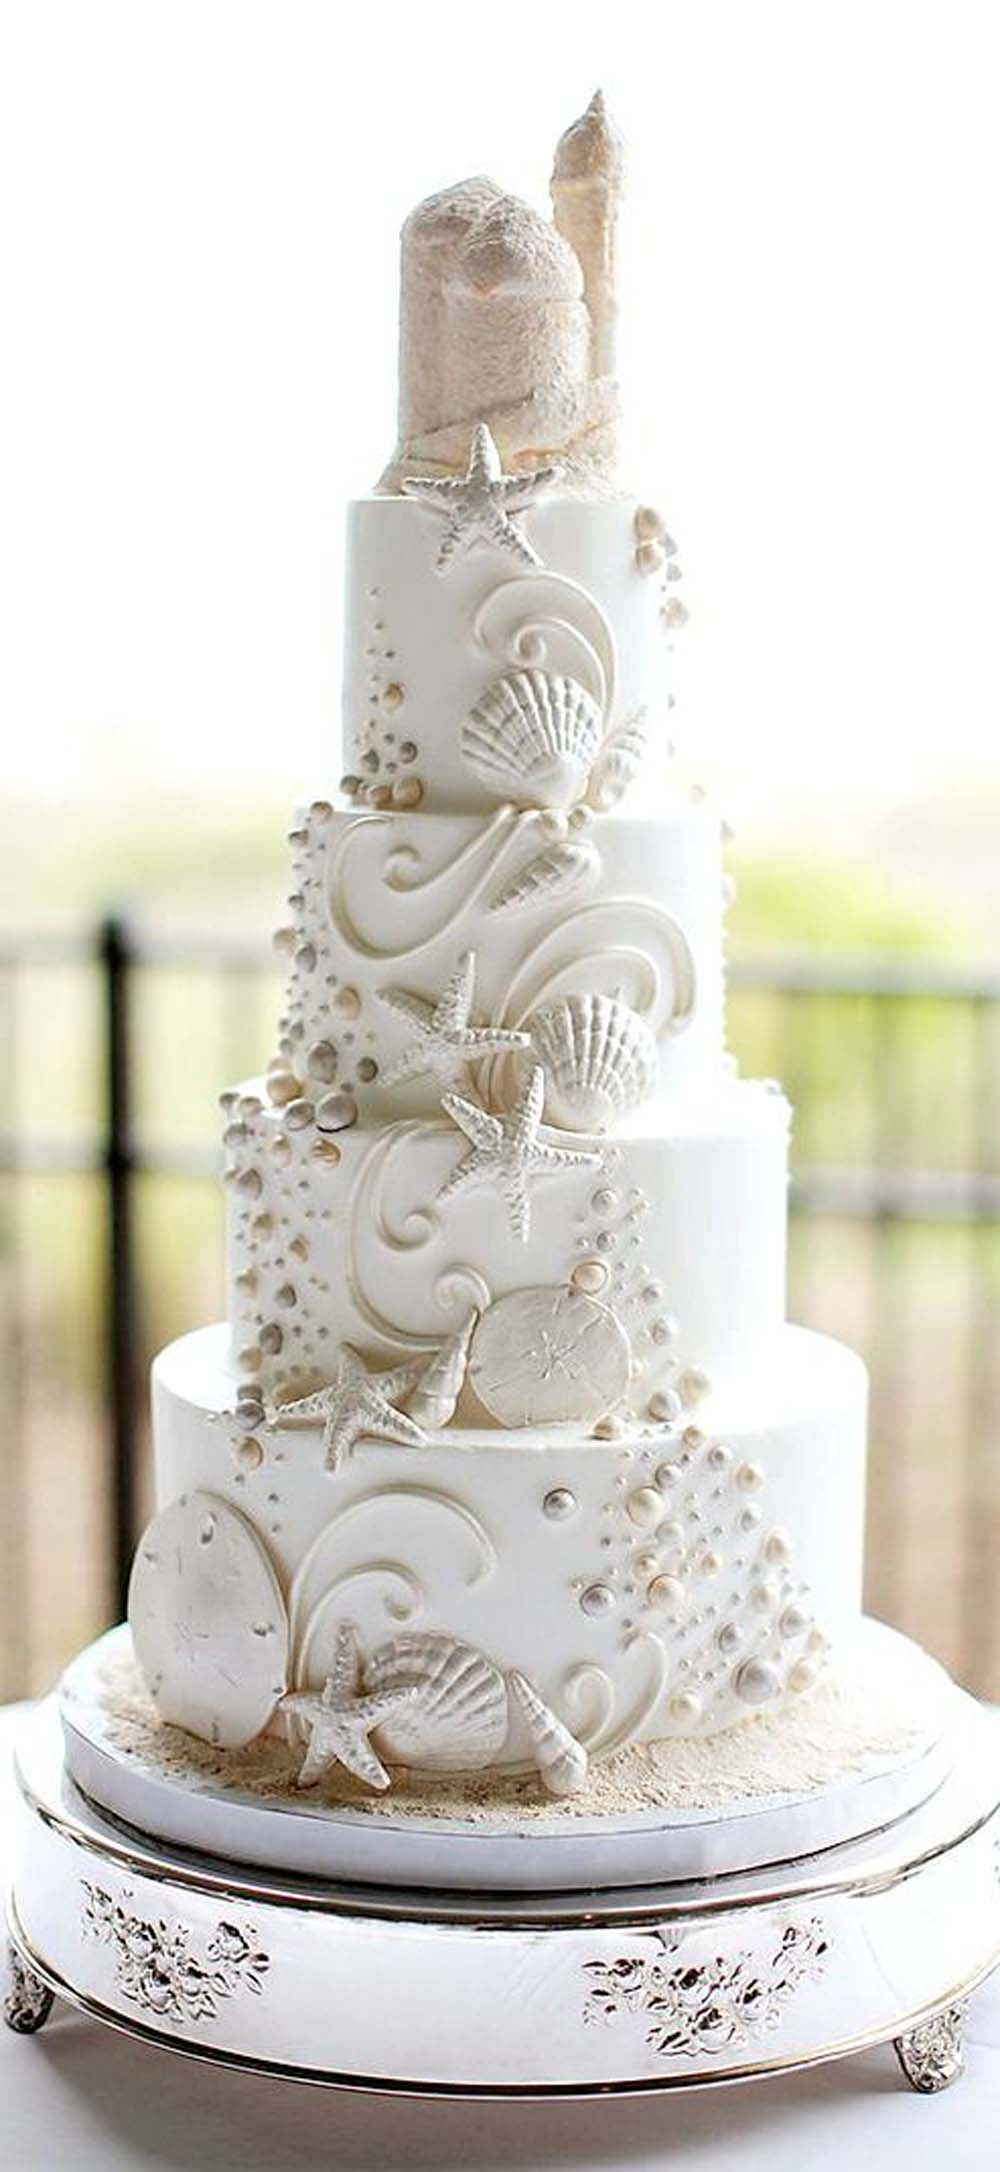 Perfect For A Beach Or Seaside Wedding This Gorgeous Confection In The Shape Of